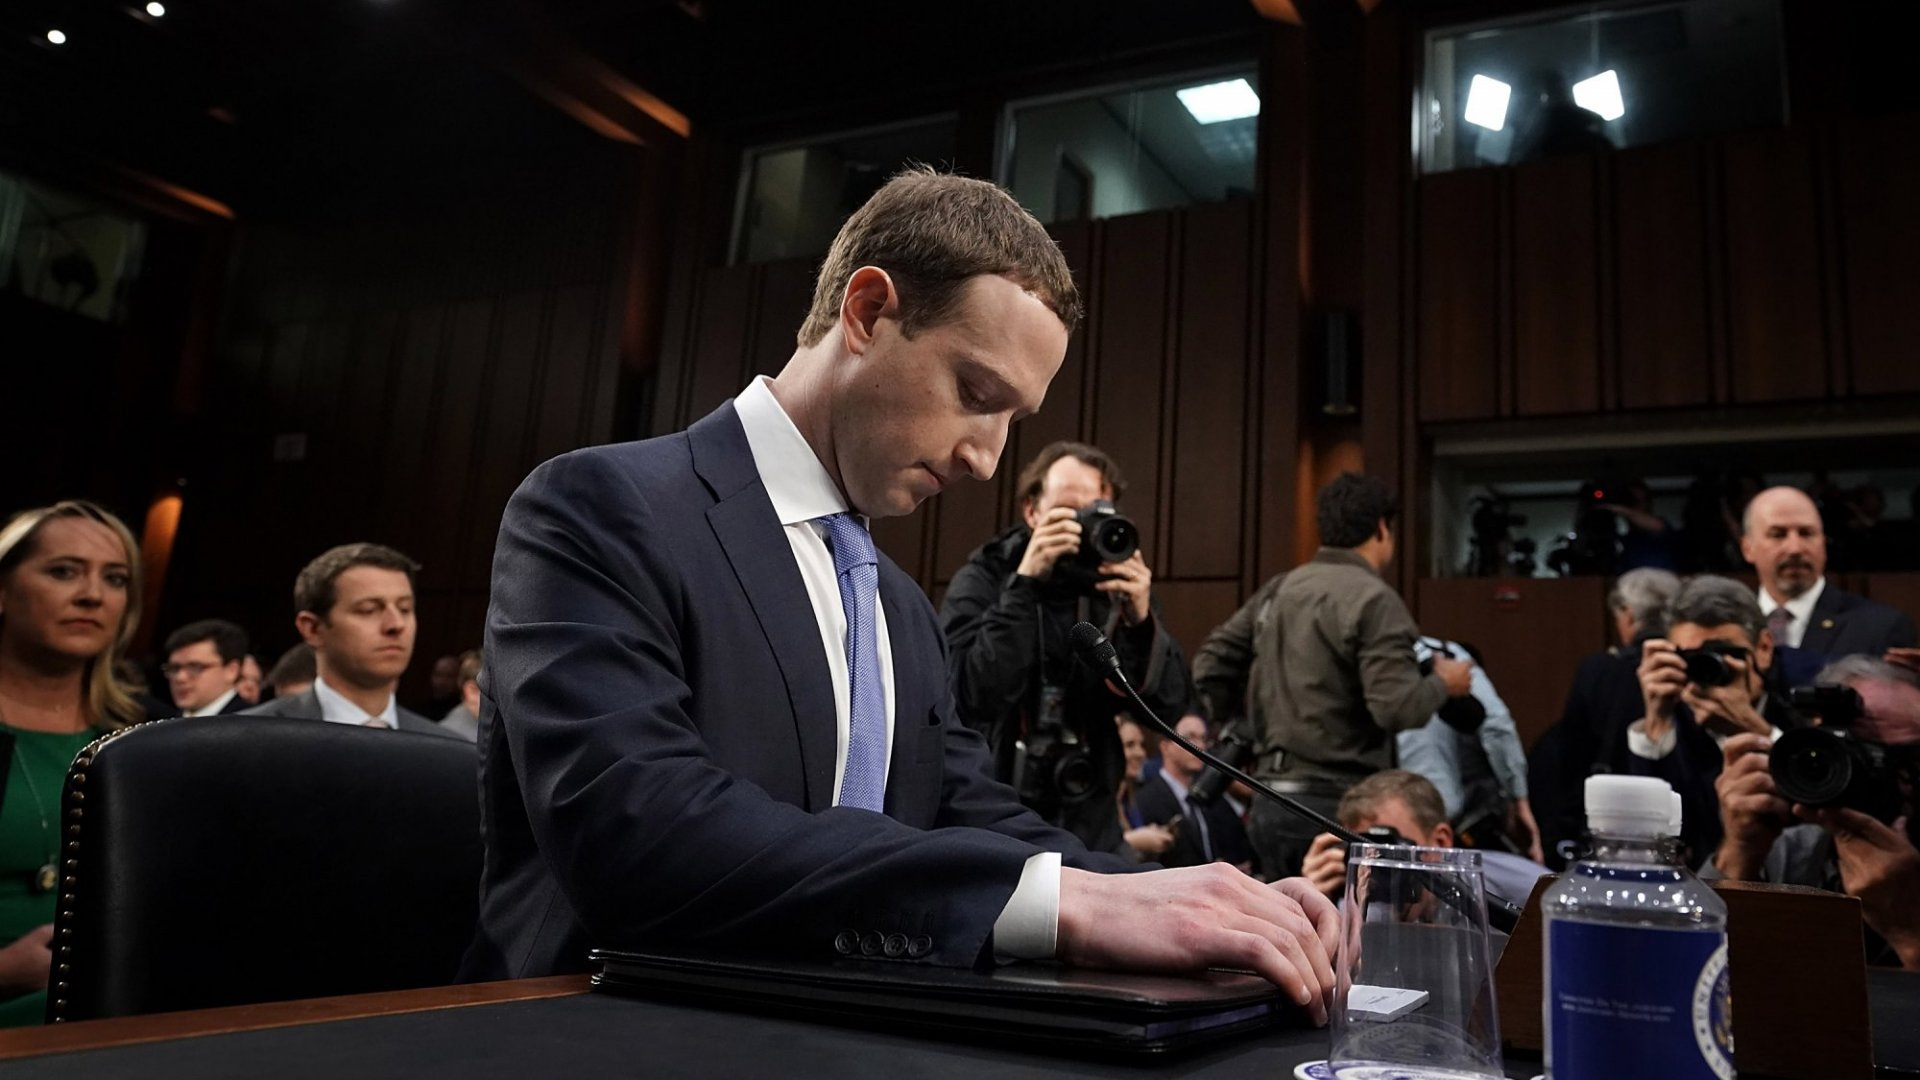 Senator Challenges Mark Zuckerberg to Sell WhatsApp and Instagram in a Push to Break up Big Tech